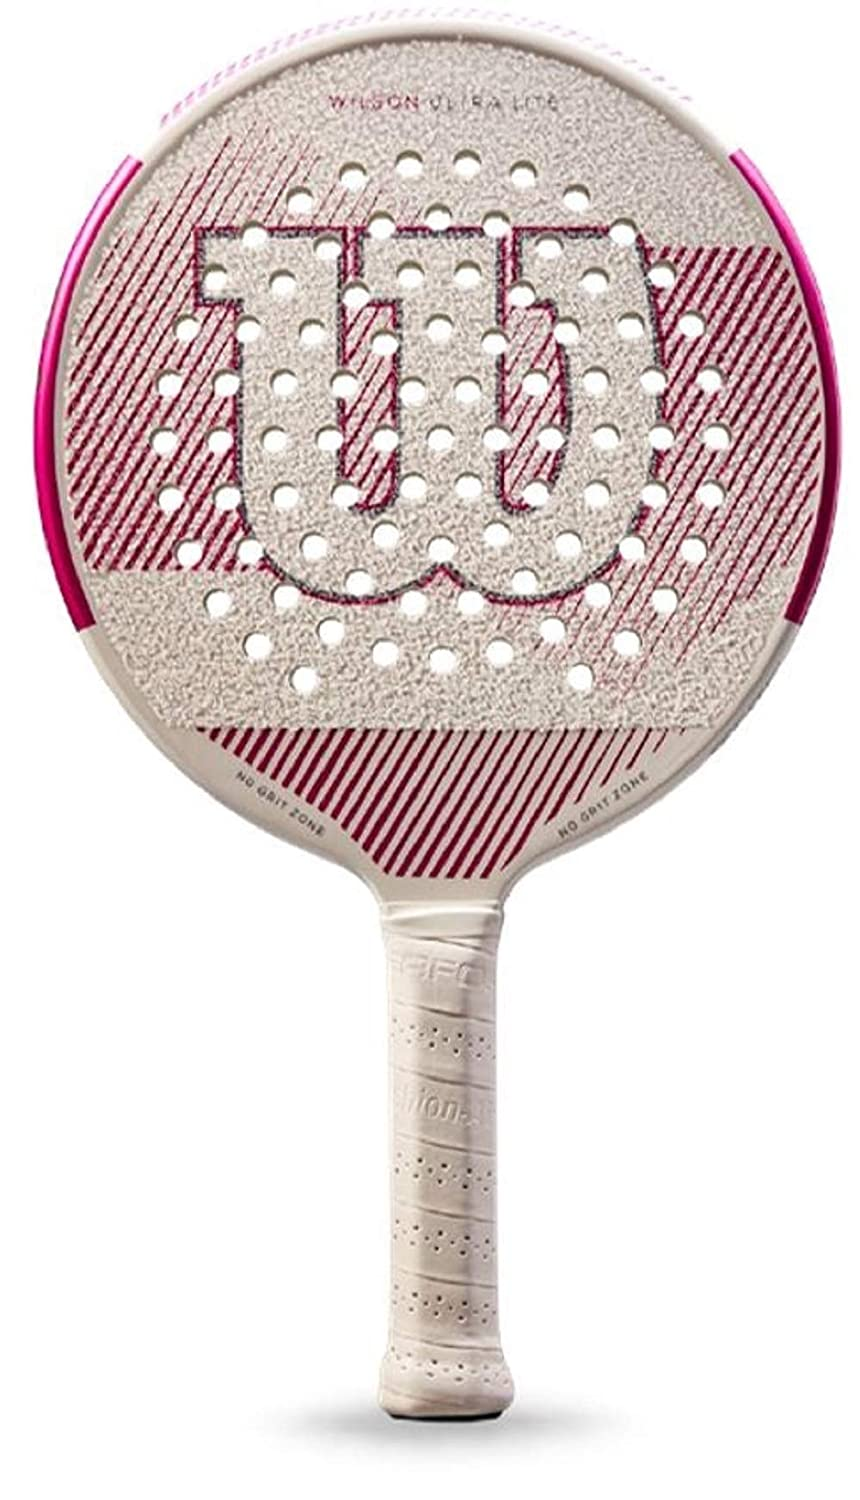 Amazon.com : Wilson Ultra Lite White/Pink Platform Tennis ...